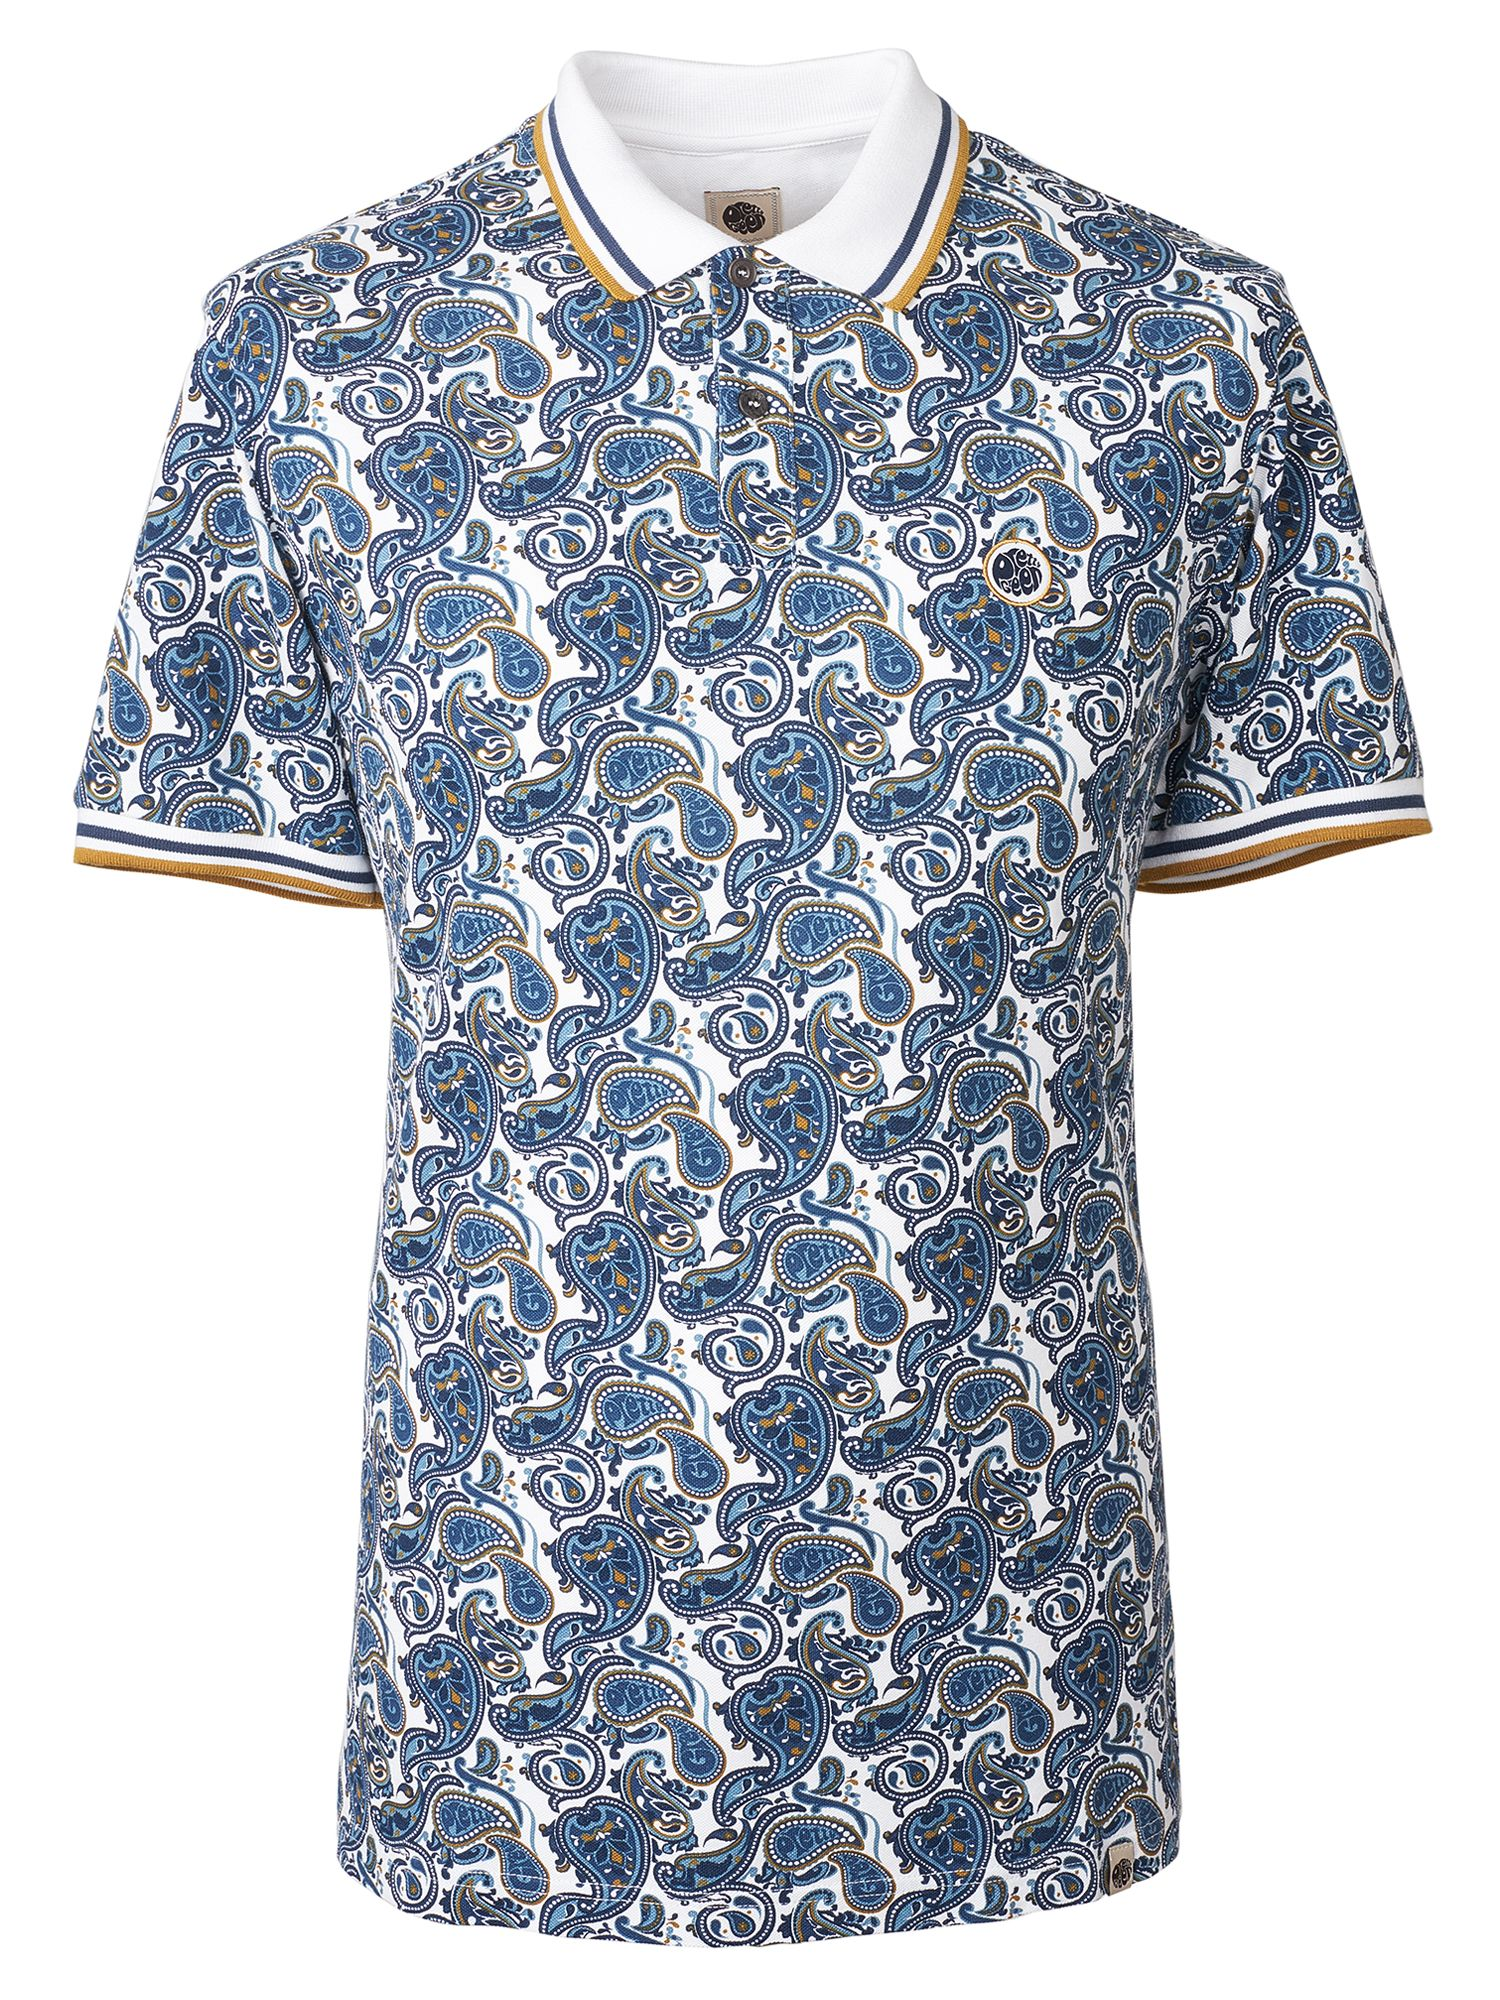 Men's Pretty Green Paisley Print Pique Polo Shirt, White